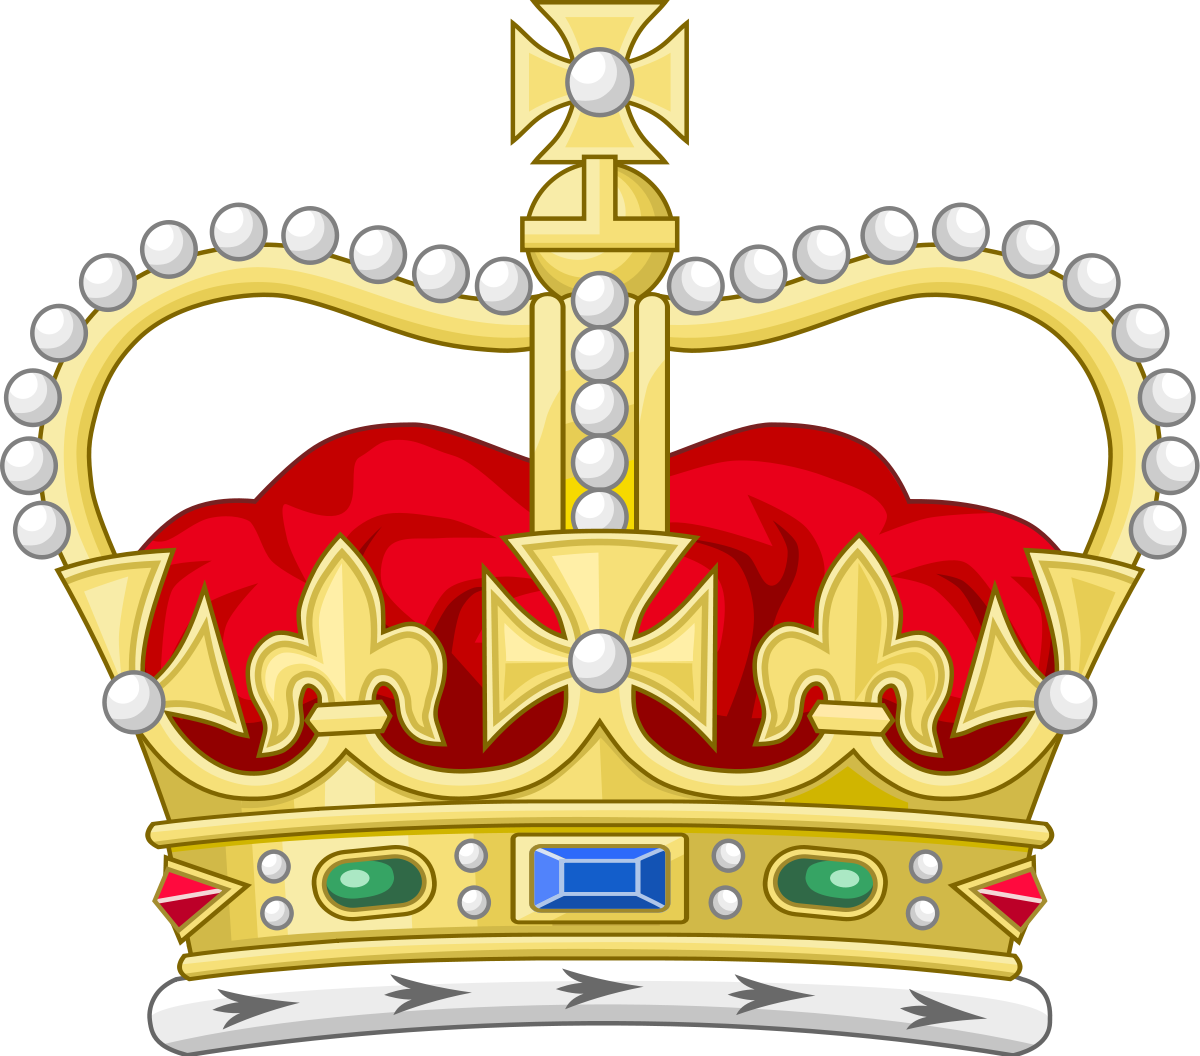 Attorney wikipedia . Crowns clipart tall crown